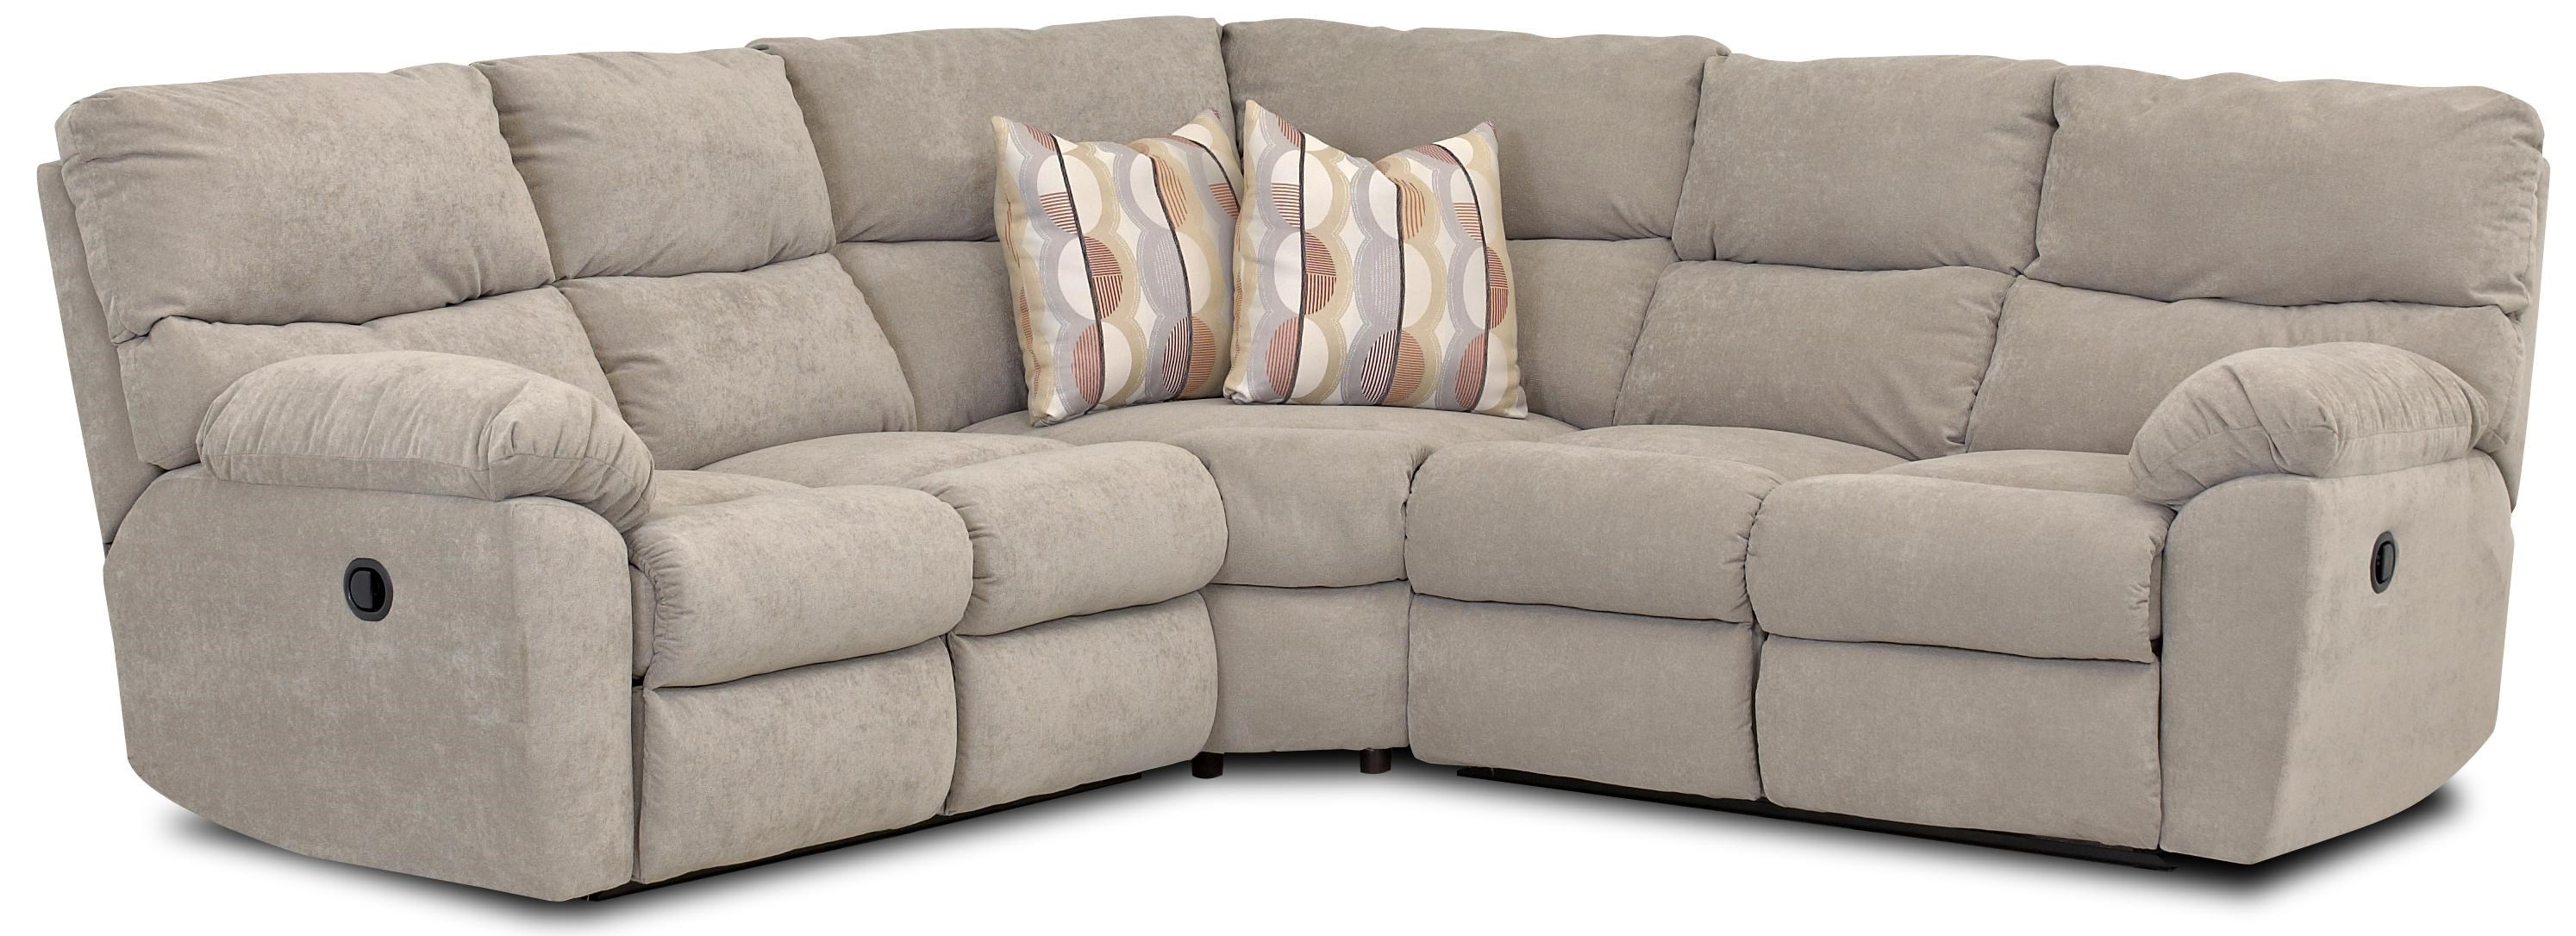 Klaussner Odessa Casual Power Reclining Sectional with Accent Pillows - Johnny Janosik - Reclining Sectional Sofa  sc 1 st  Johnny Janosik & Klaussner Odessa Casual Power Reclining Sectional with Accent ... islam-shia.org